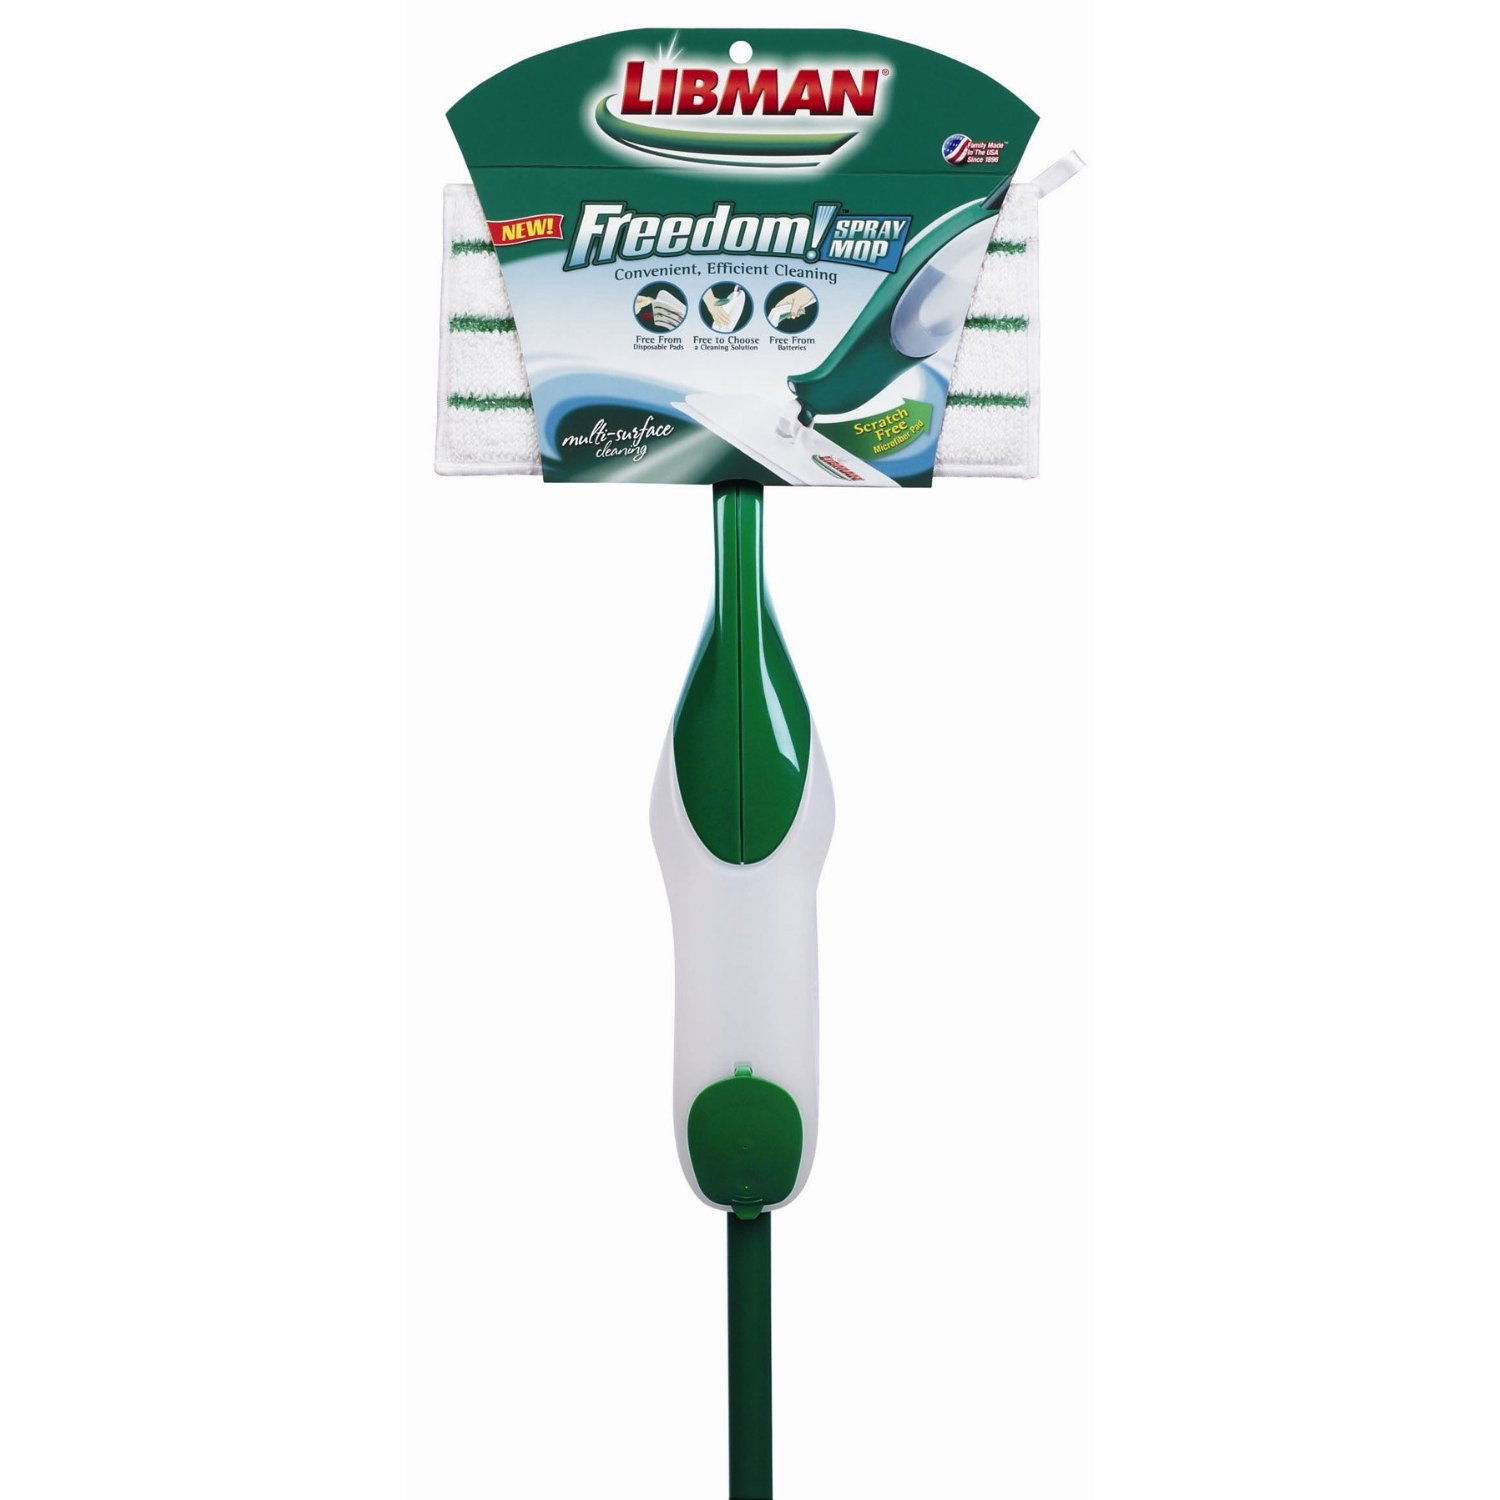 = $ for both or $ each after coupons & gift card. Keep in mind there are other Libman mops, brooms and scrubbers included in the offer that you can mix & match with as well. The Freedom spray mop is included at $, and there is a $5/1 Libman Freedom Spray Mop if you have interest.